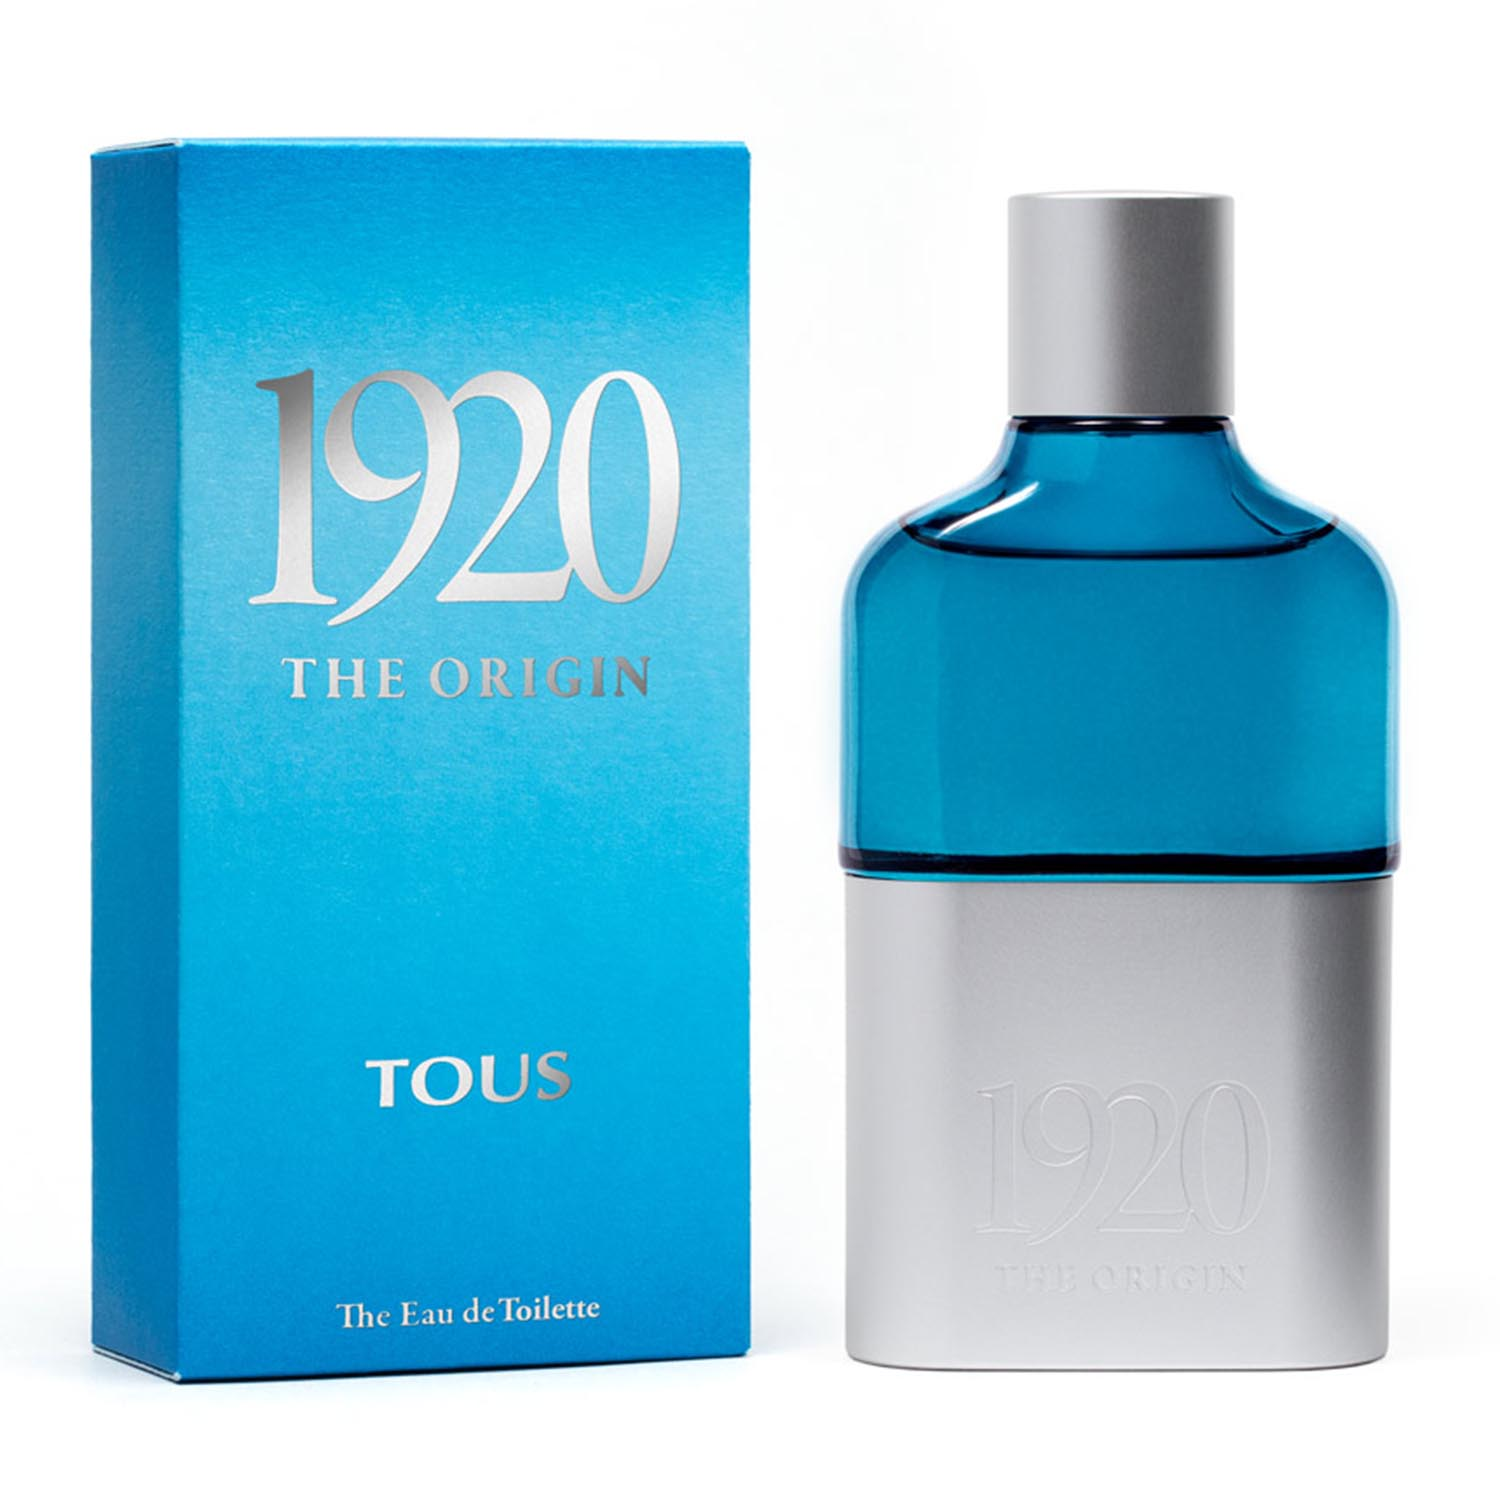 Tous 1920 the origin the eau de toilette 60ml vaporizador